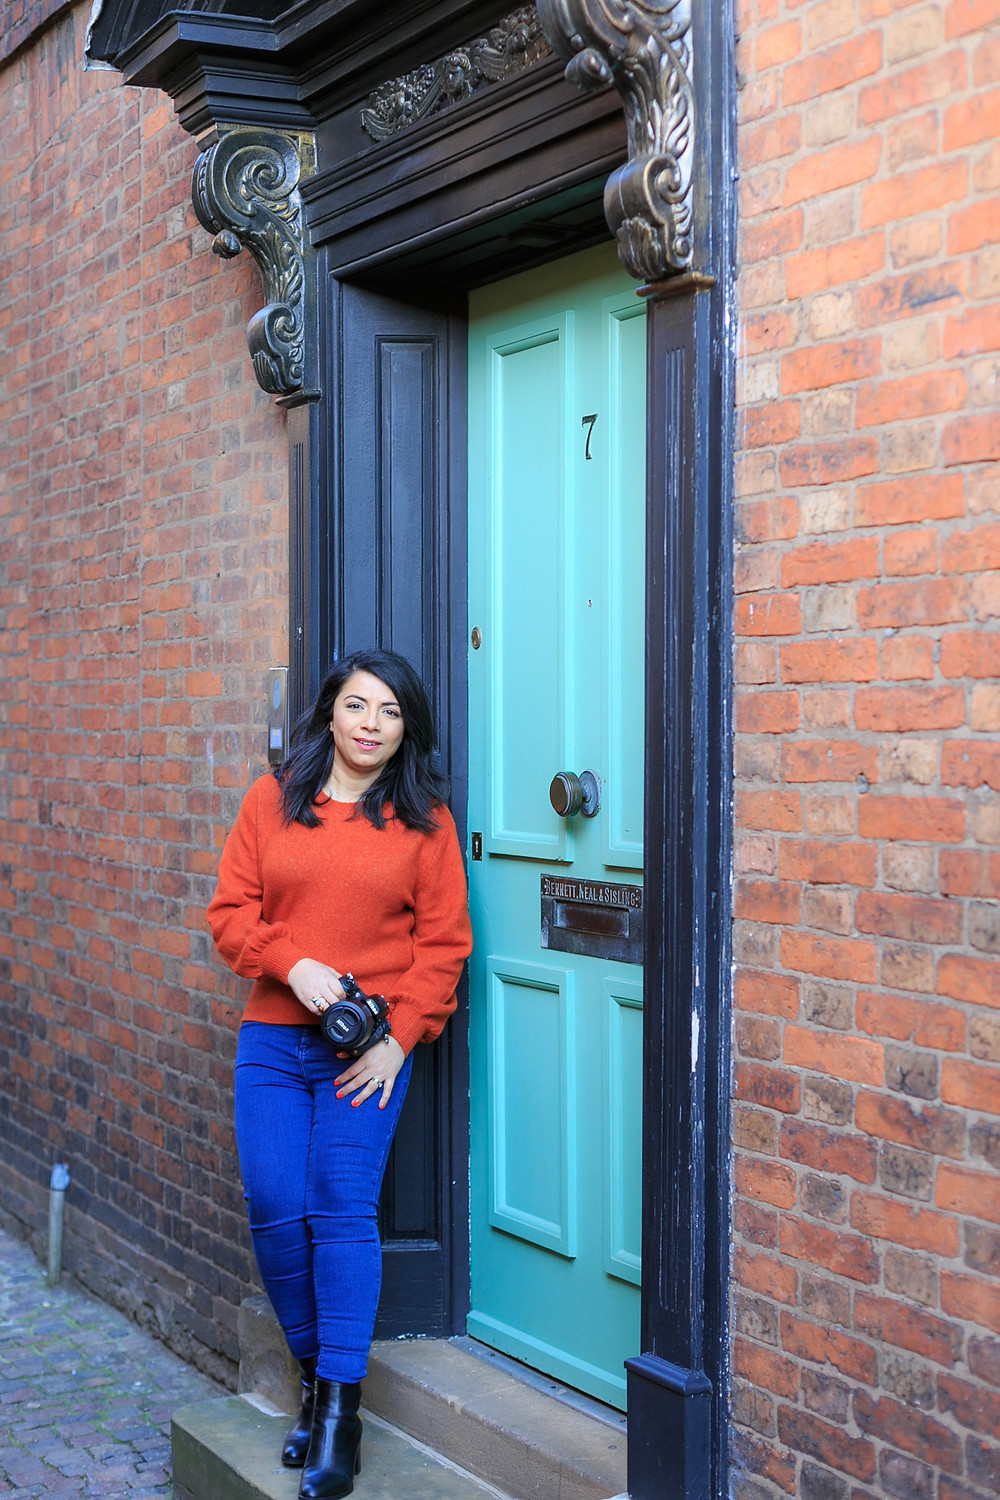 Posing with camera in a green doorway